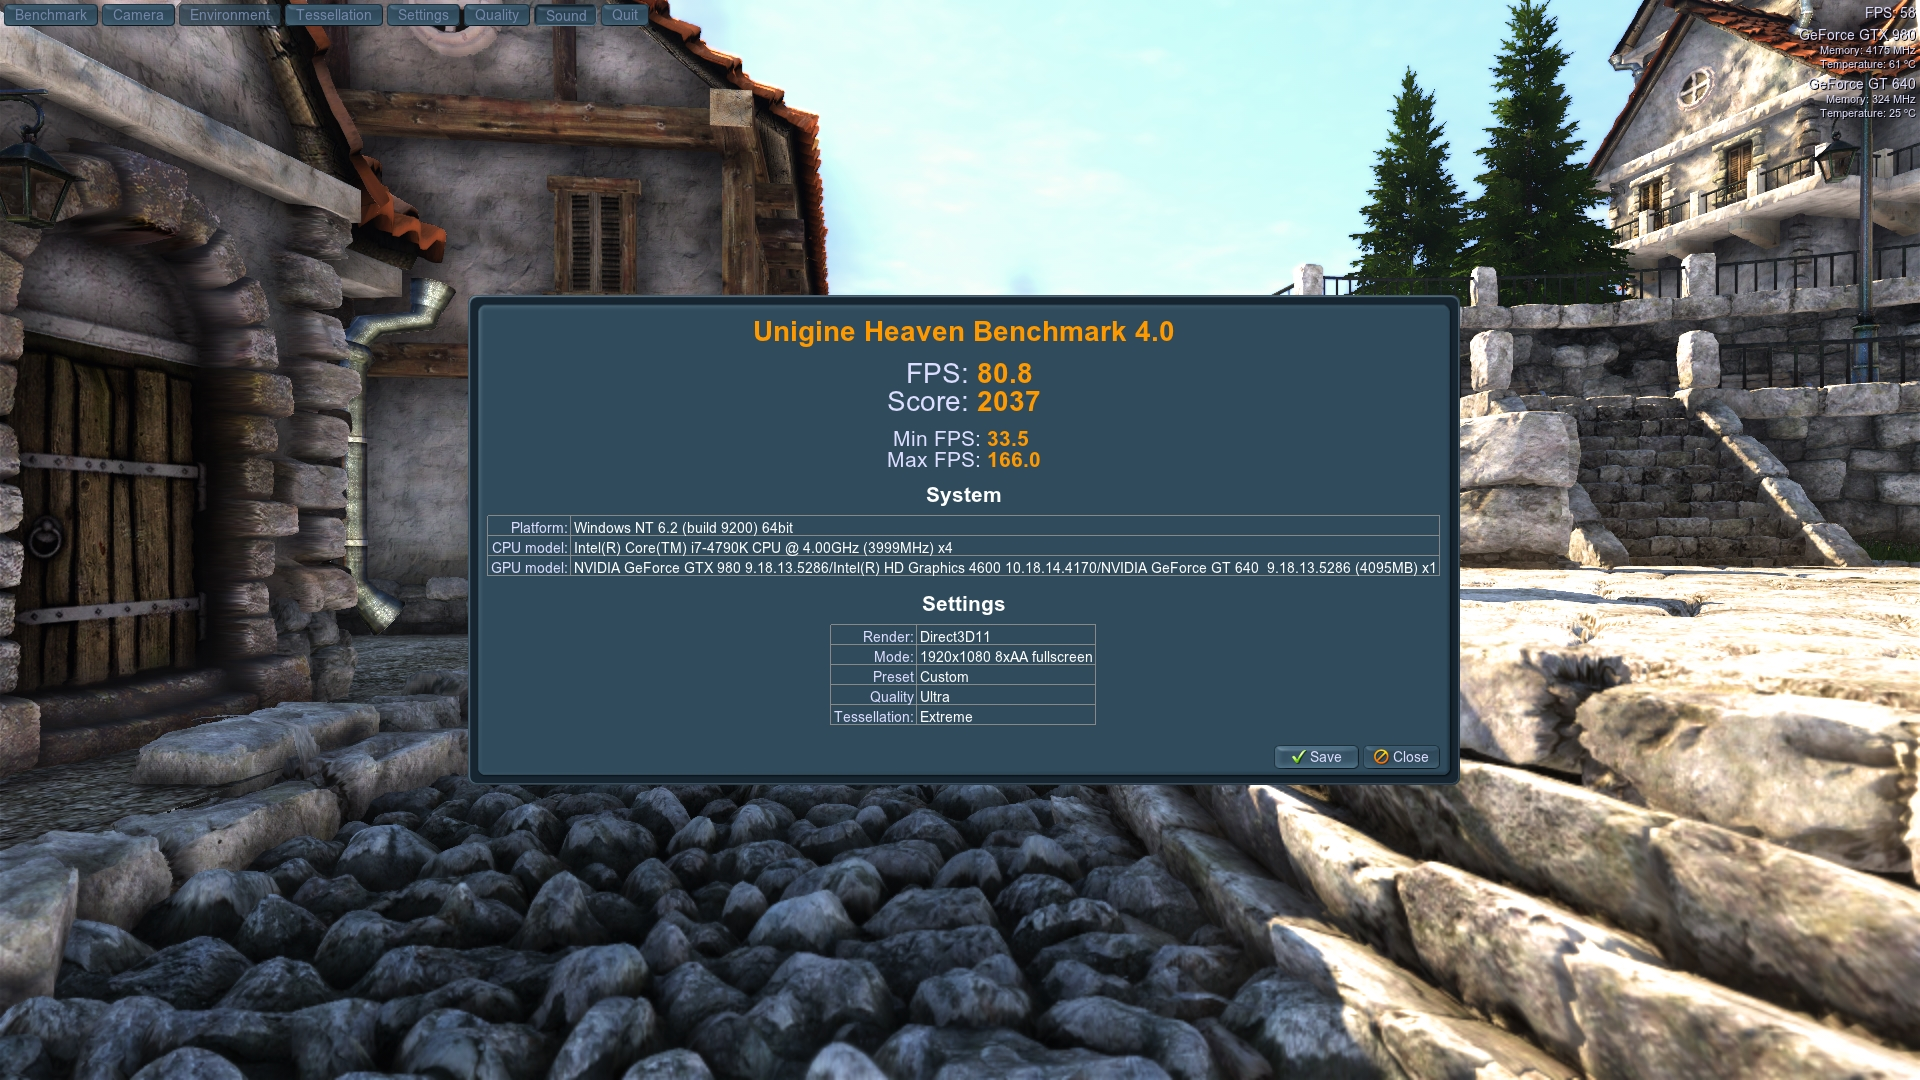 unigine heaven benchmark 4.0 download